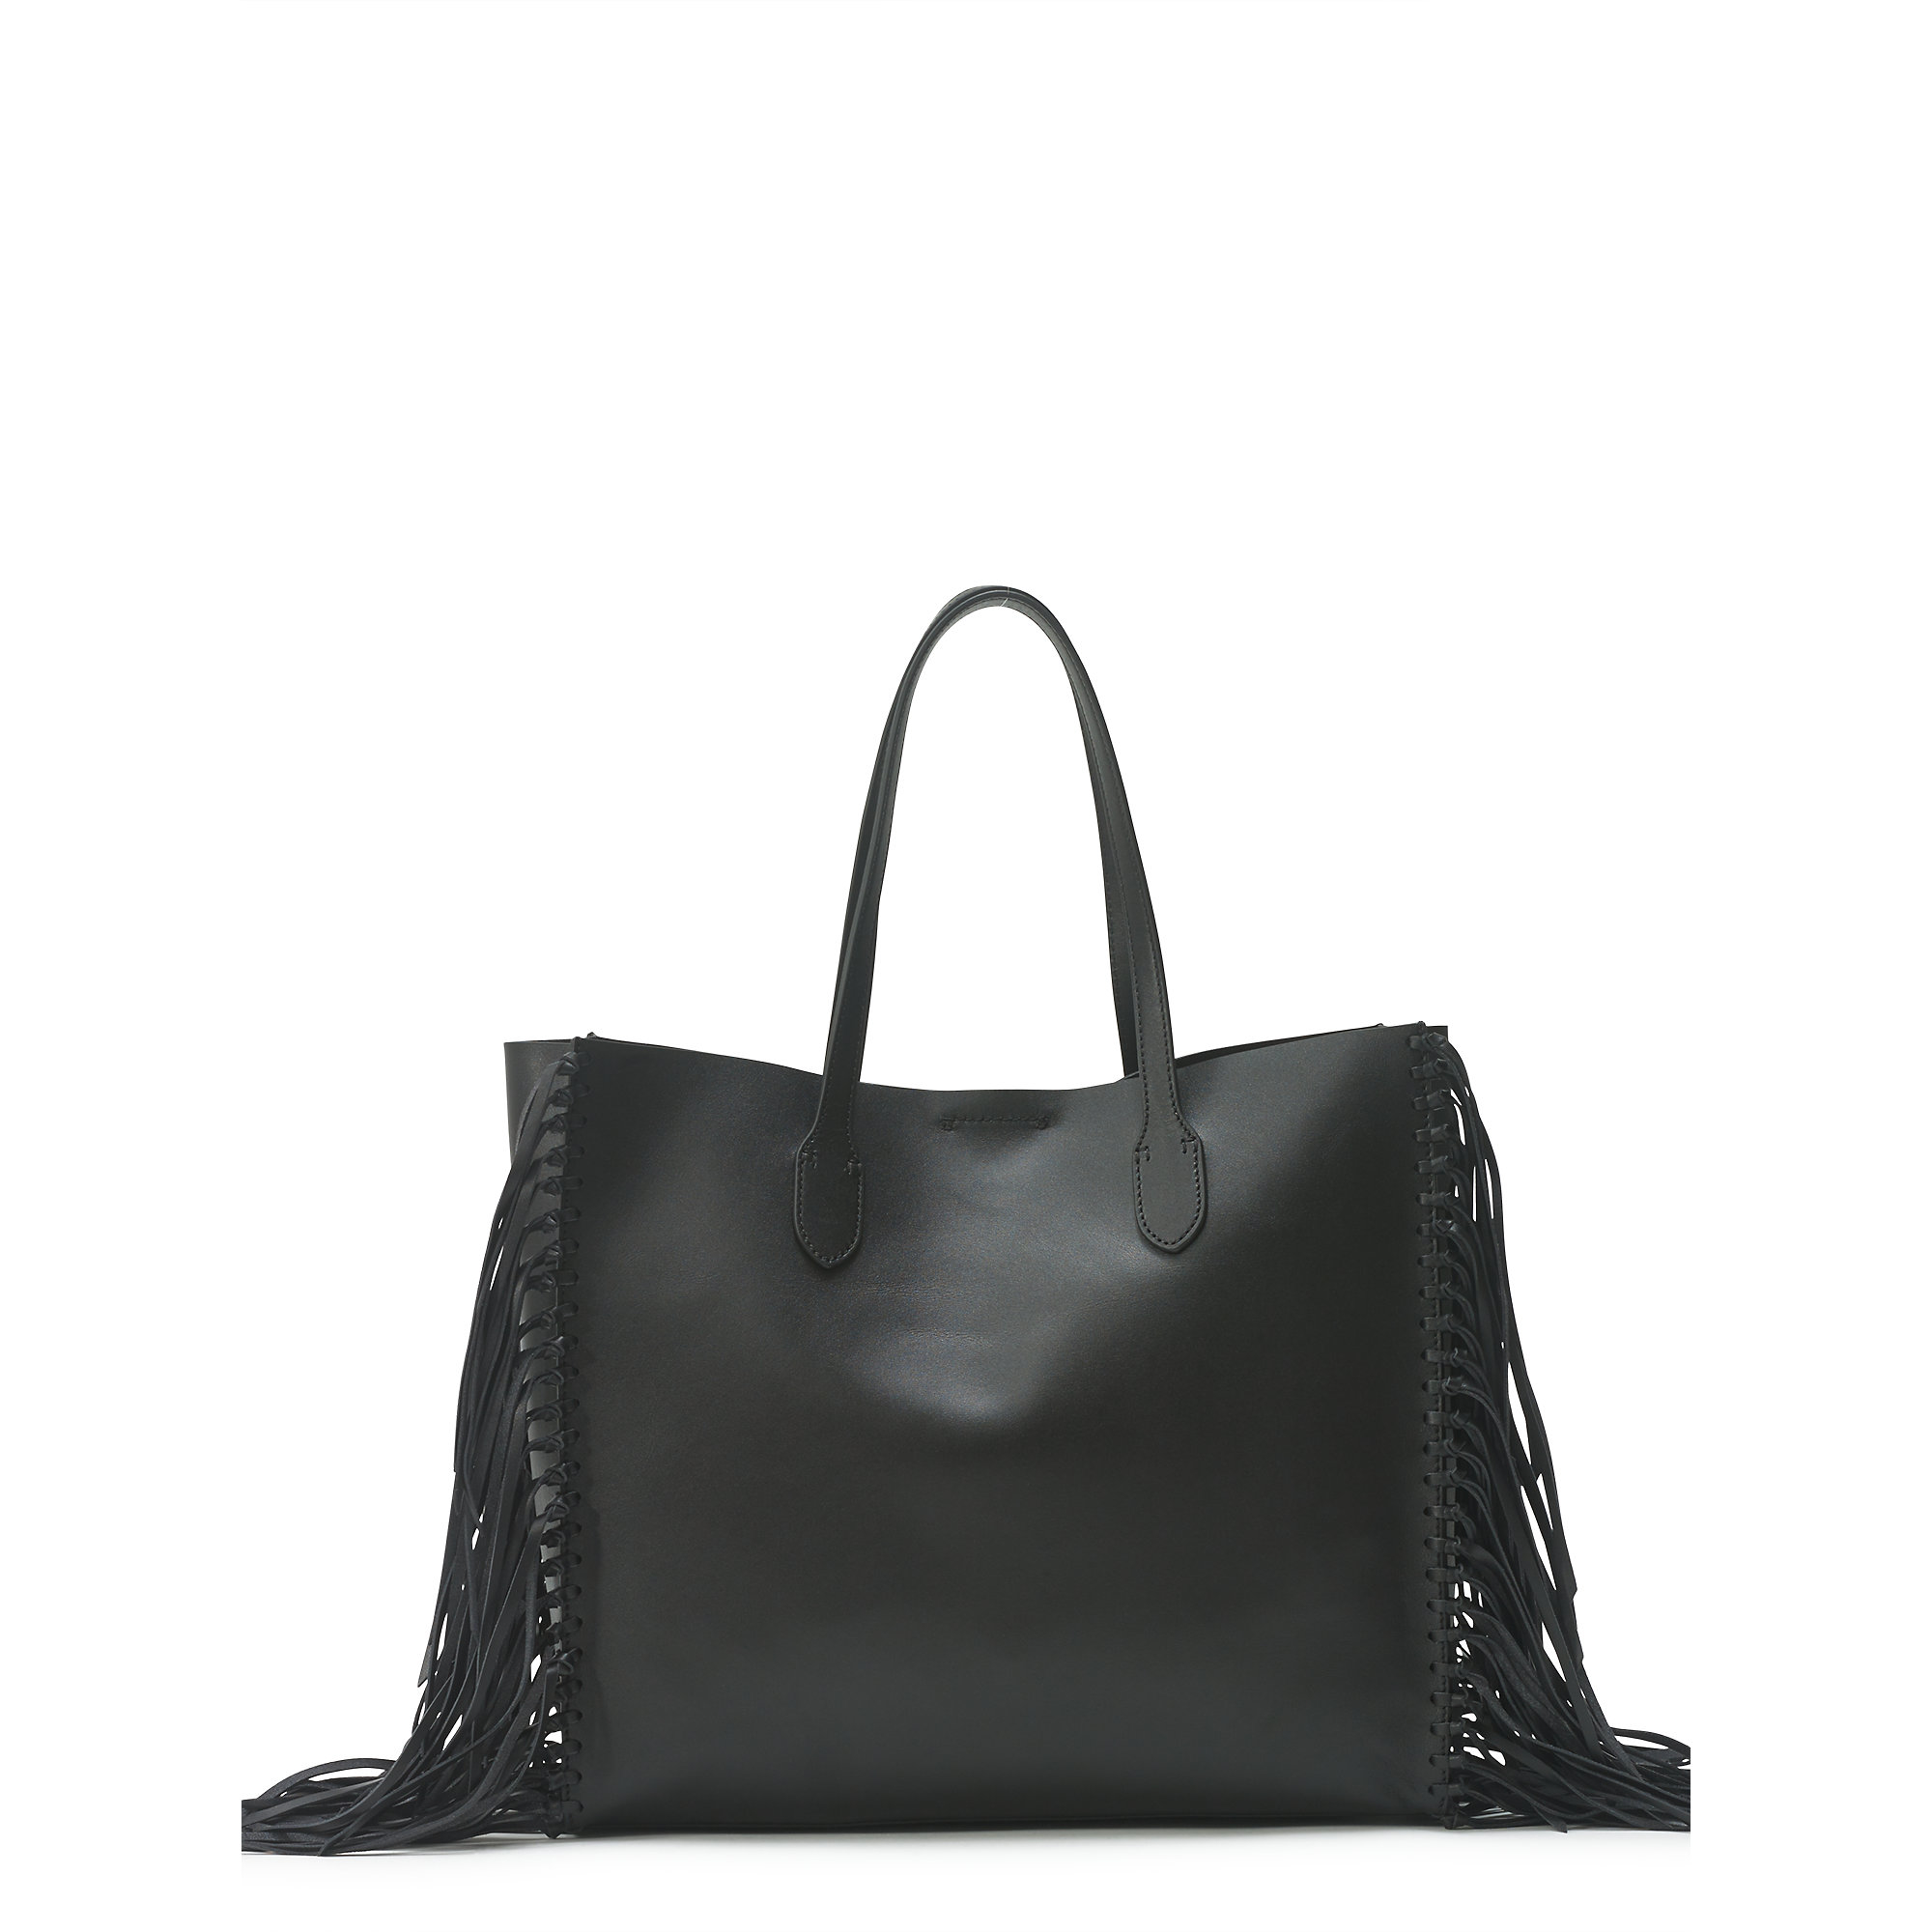 6054d1692b0c Lyst - Polo Ralph Lauren Fringed Leather Tote in Black